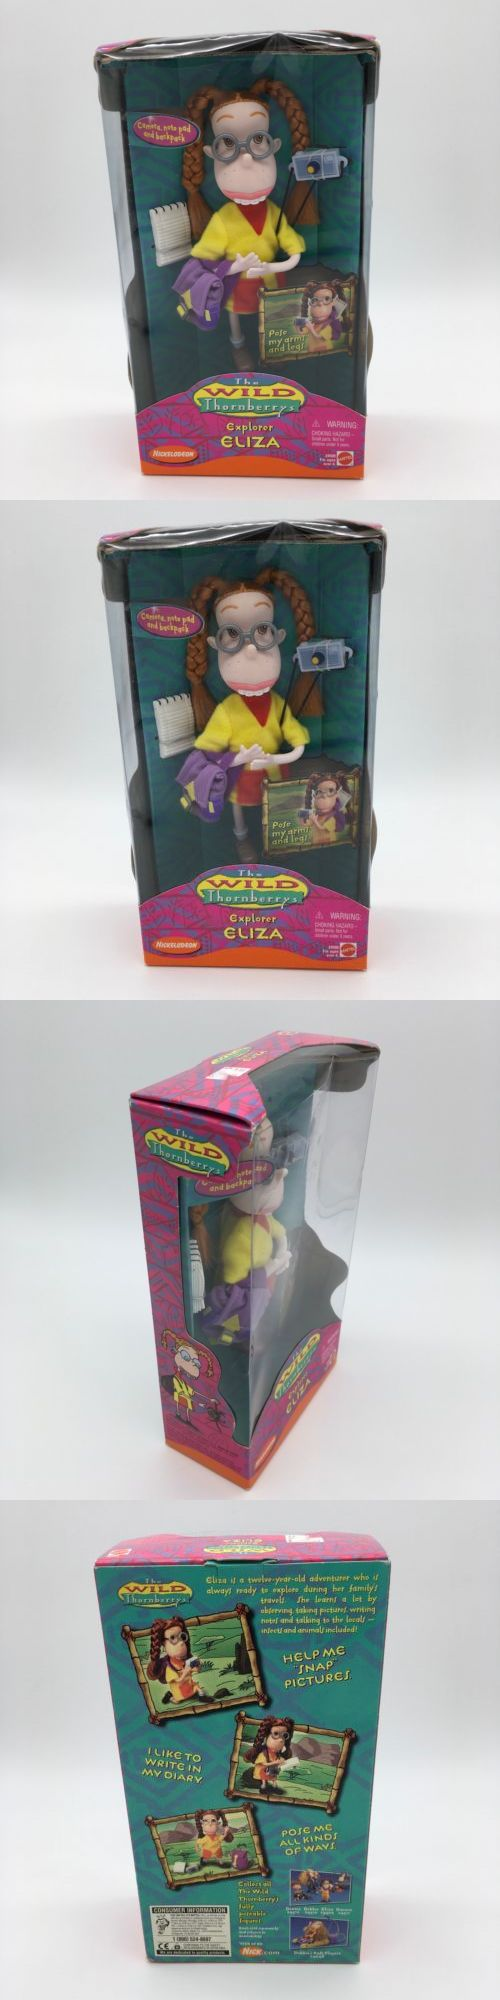 Rugrats 2628: The Wild Thornberrys, Explorer Eliza, 1999 Mattel Nickelodeon New Sealed -> BUY IT NOW ONLY: $37.95 on eBay!